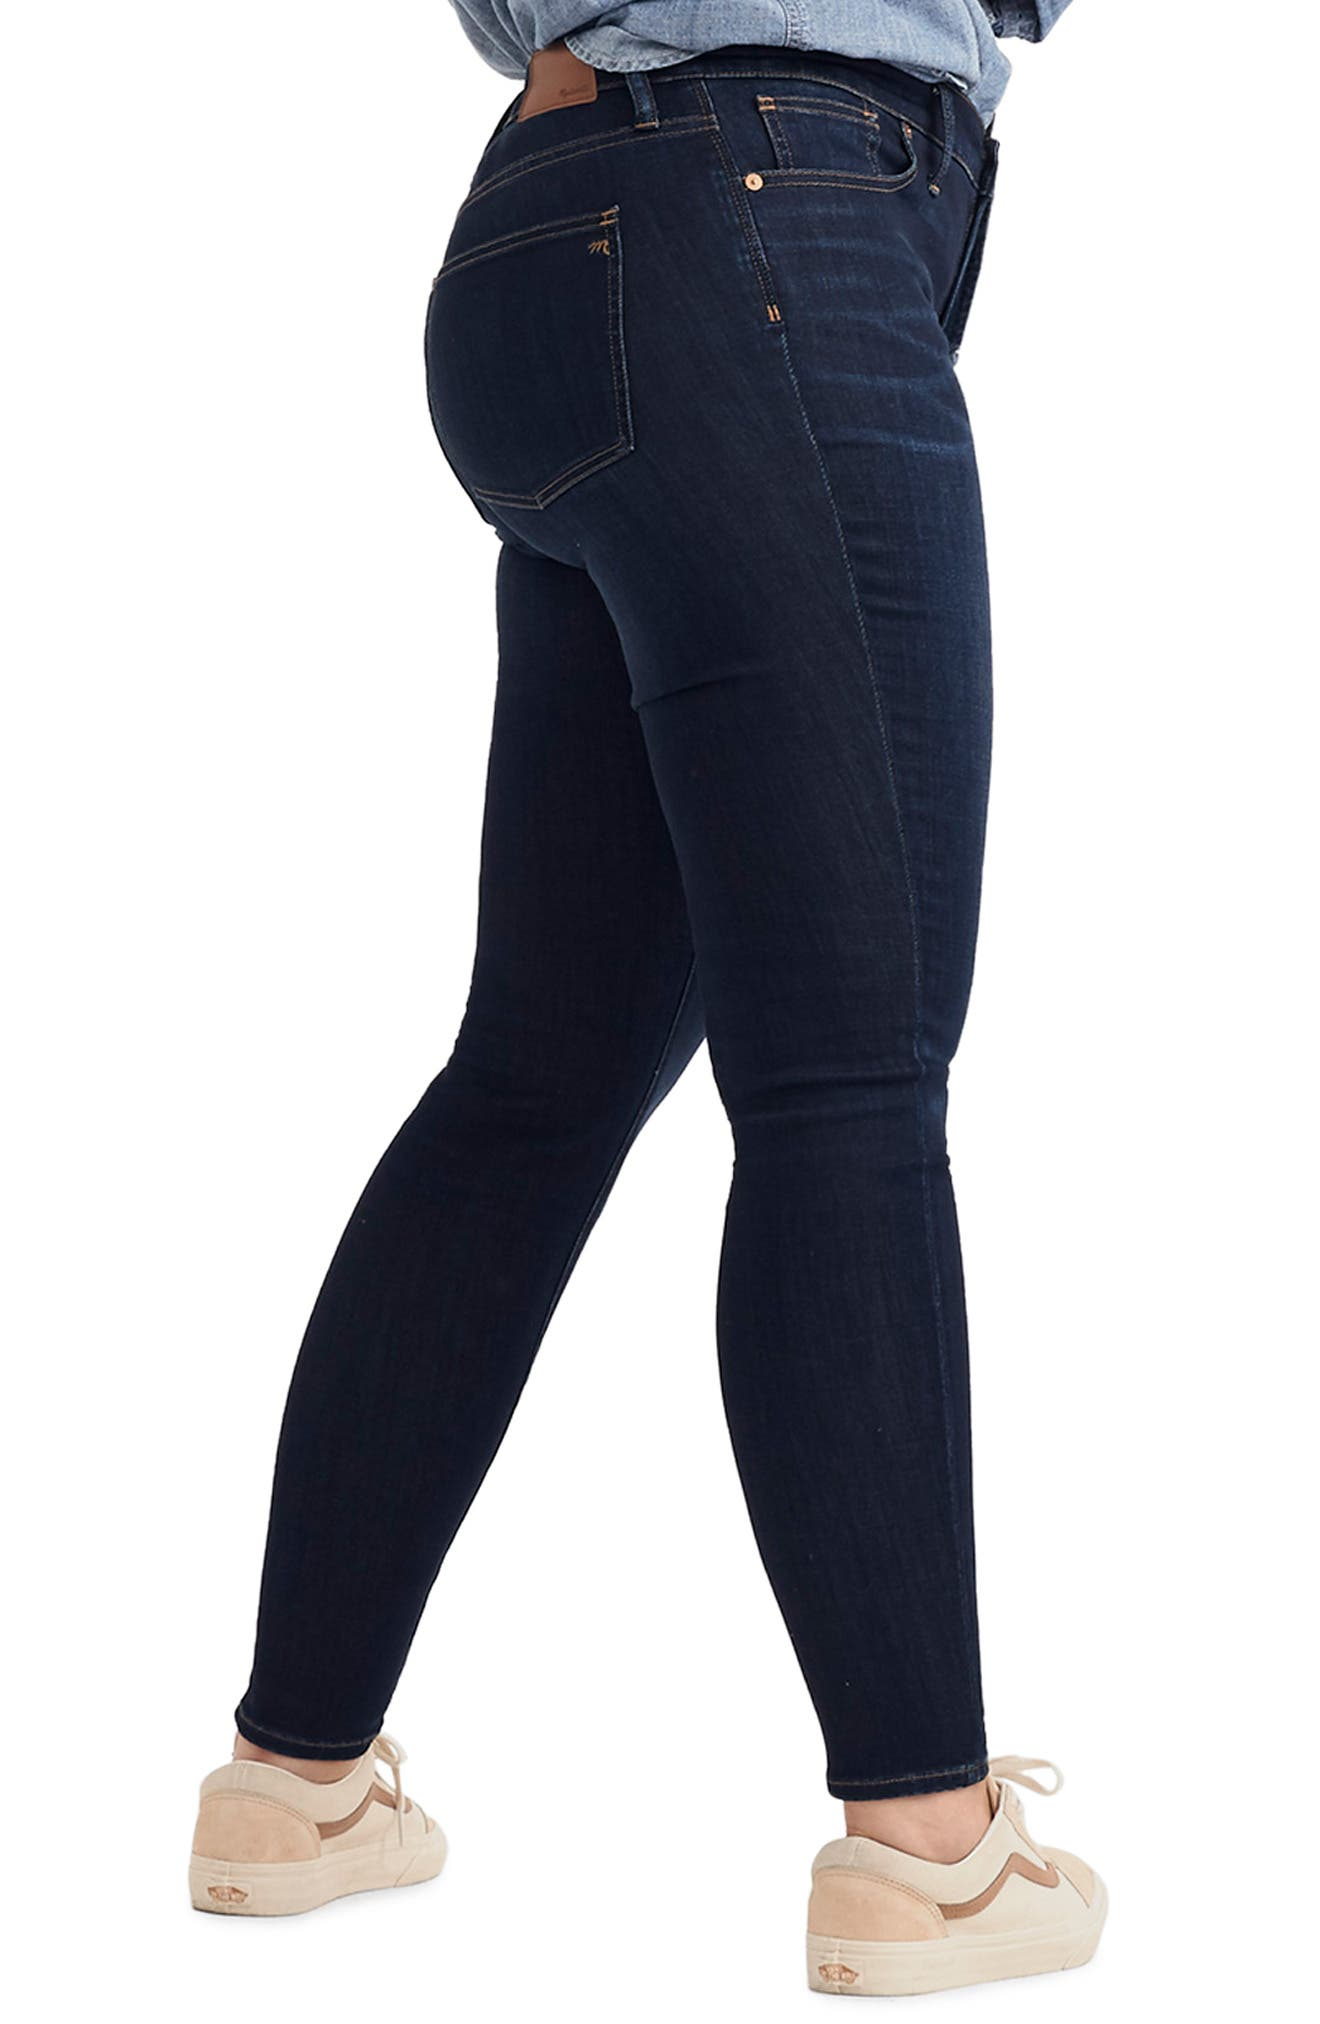 9-Inch High Rise Skinny Jeans,                             Alternate thumbnail 10, color,                             LARKSPUR